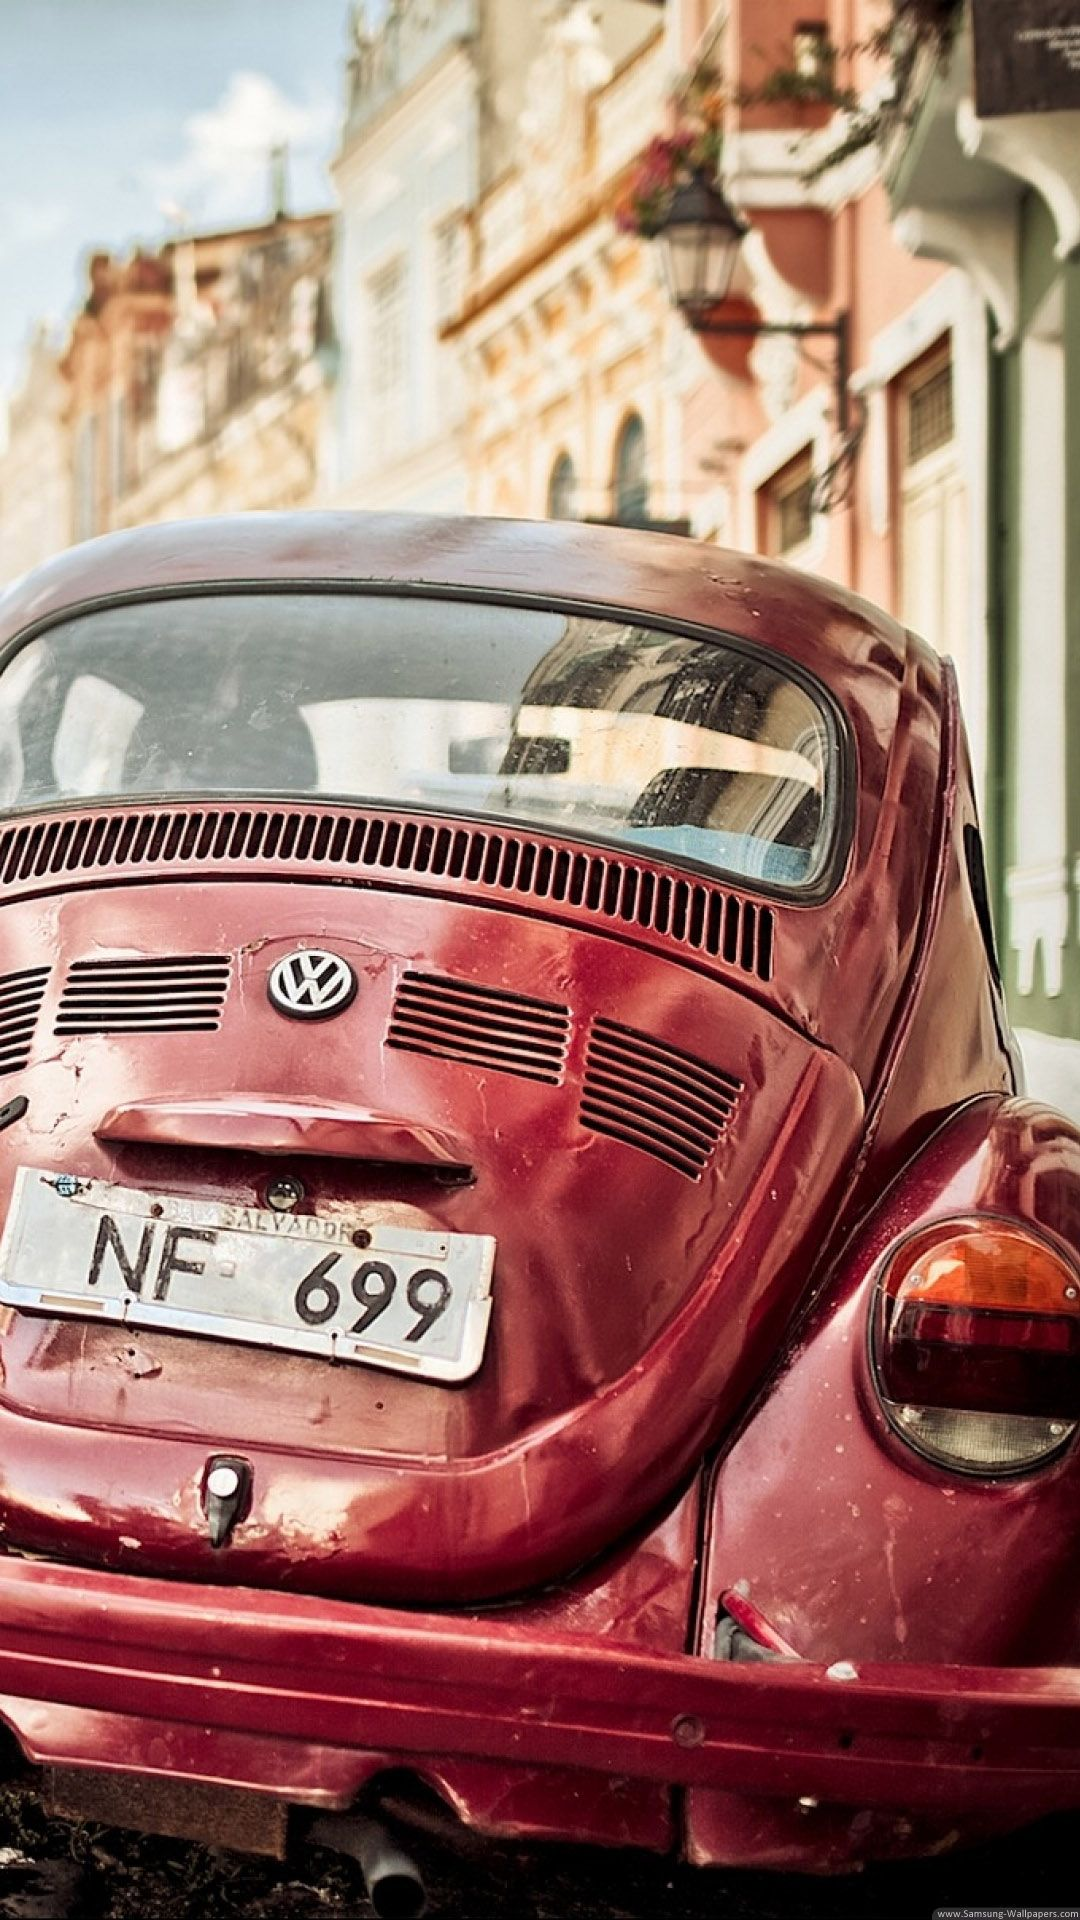 Wallpaper iphone retro - Vintage Volkswagen Beetle Iphone 6 Plus Hd Wallpaper Http Freebestpicture Com Vintage Volkswagen Beetle Iphone 6 Plus Hd Wallpaper Pinterest